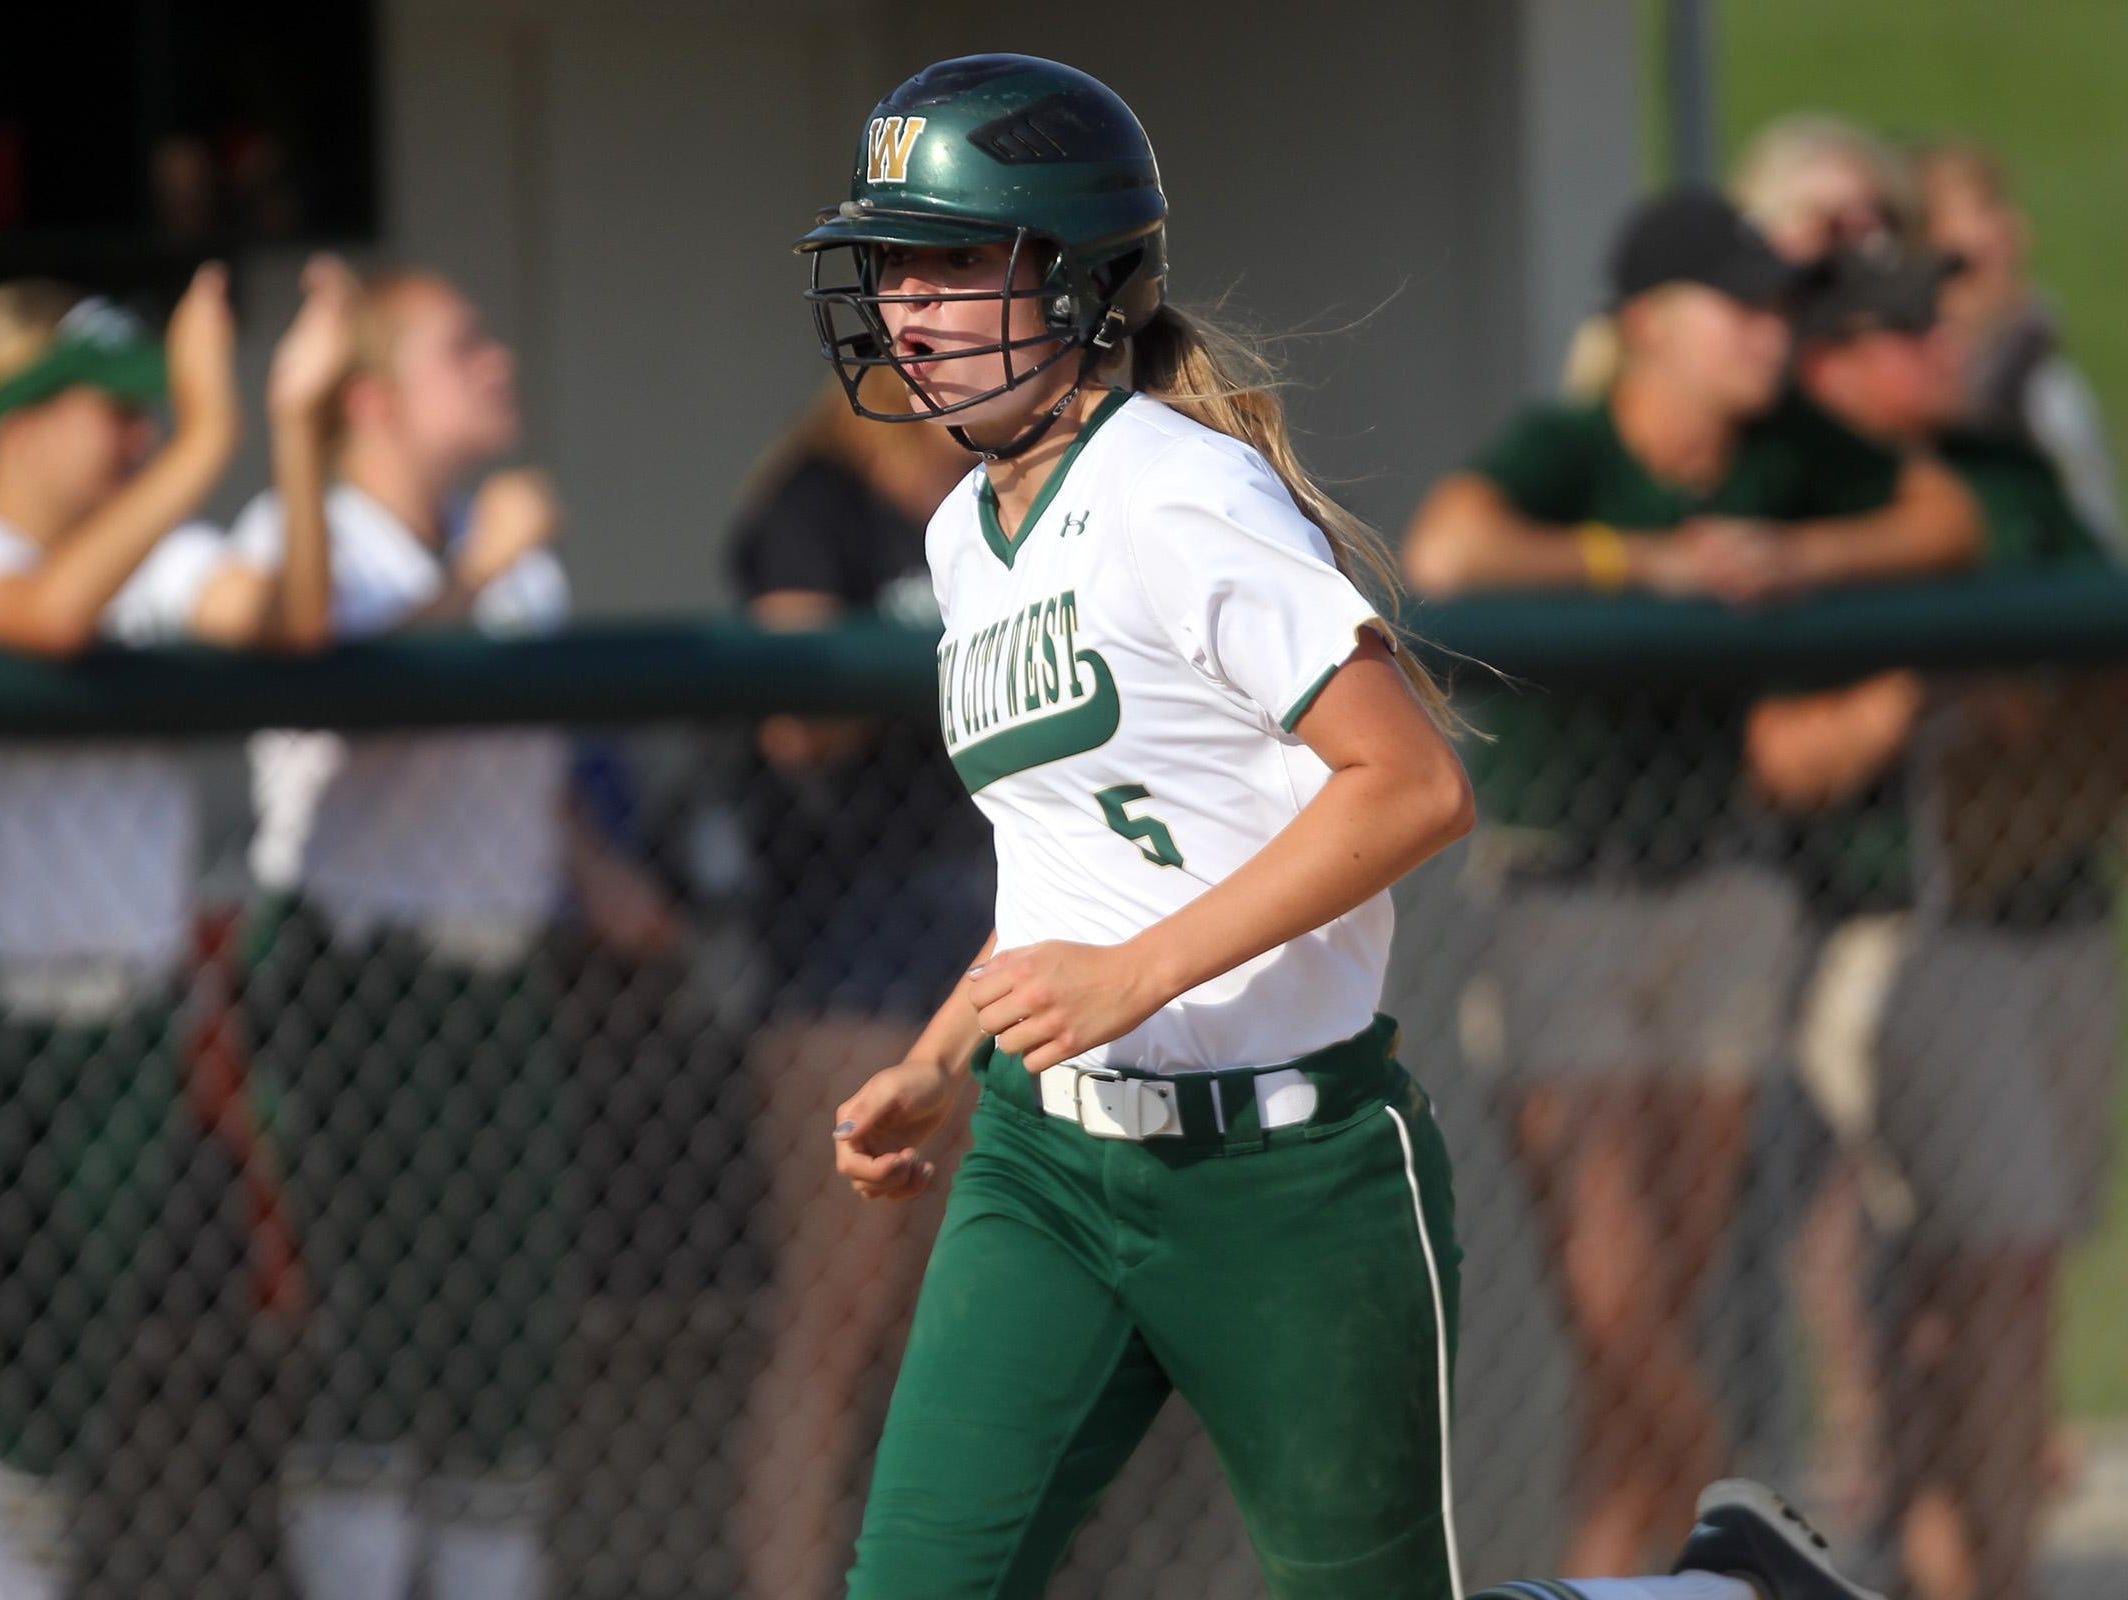 West High's Grace Tafolla celebrates as she runs in a score during the Women of Troy's game against Linn-Mar on Thursday, July 9, 2015.